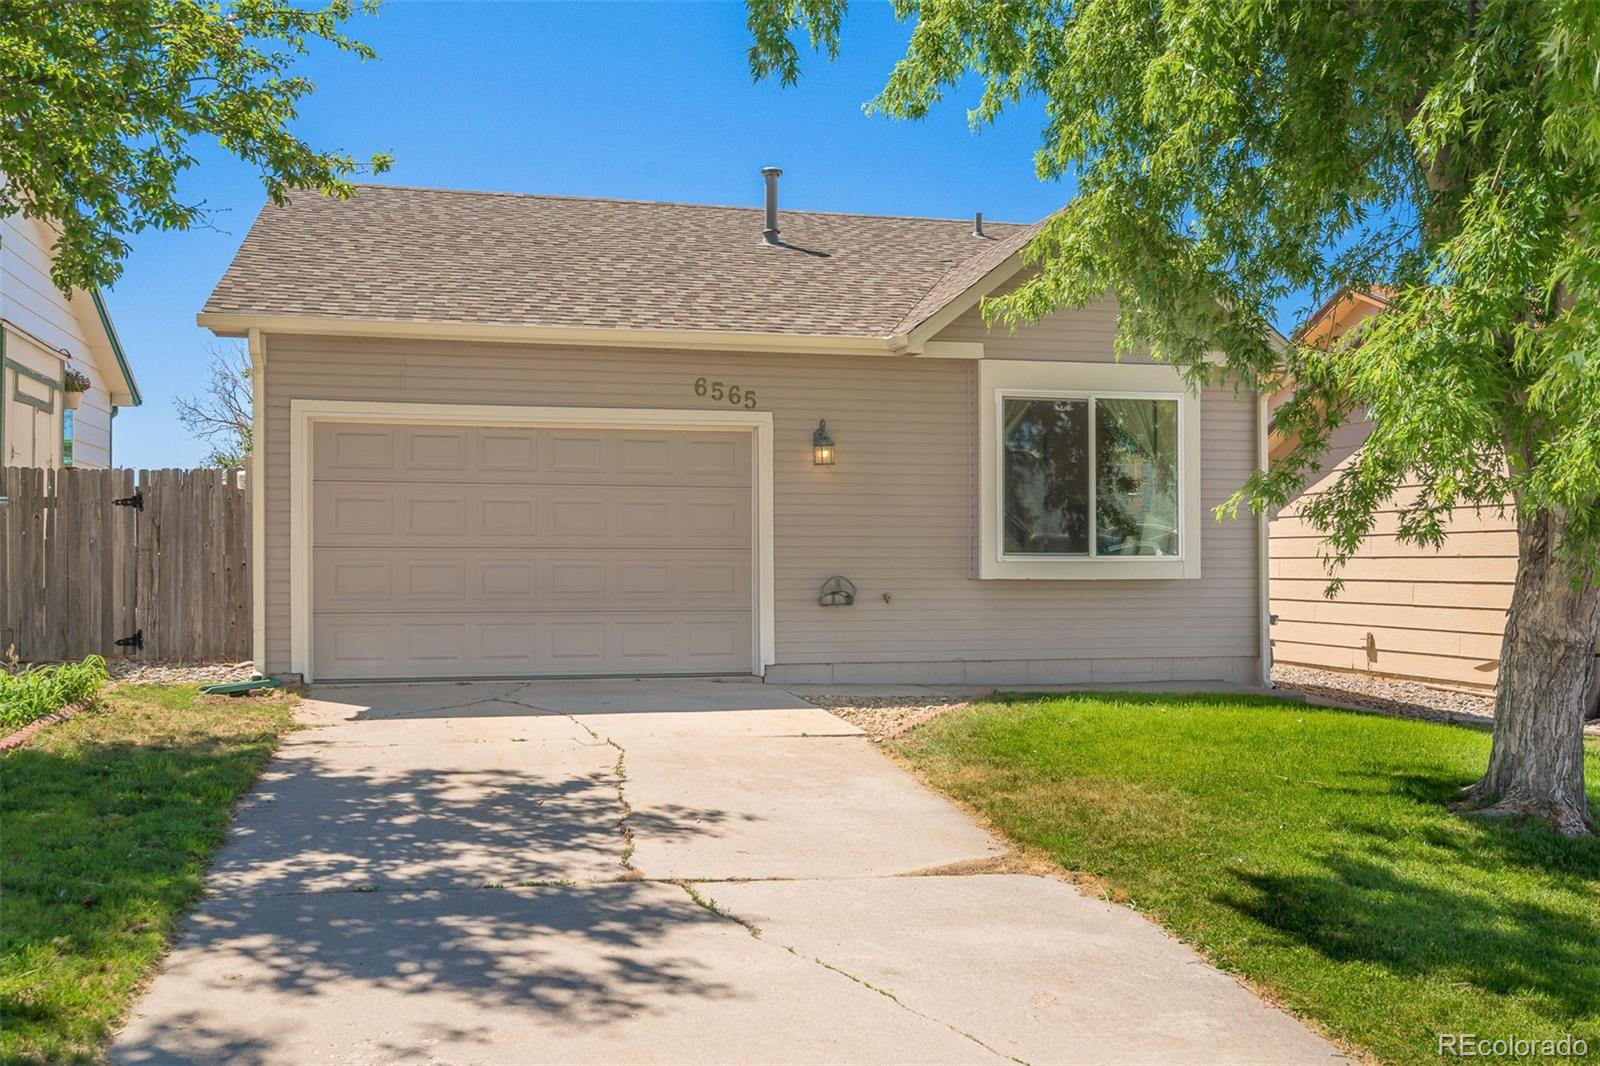 MLS# 3847207 - 1 - 6565 Mohican Drive, Colorado Springs, CO 80915